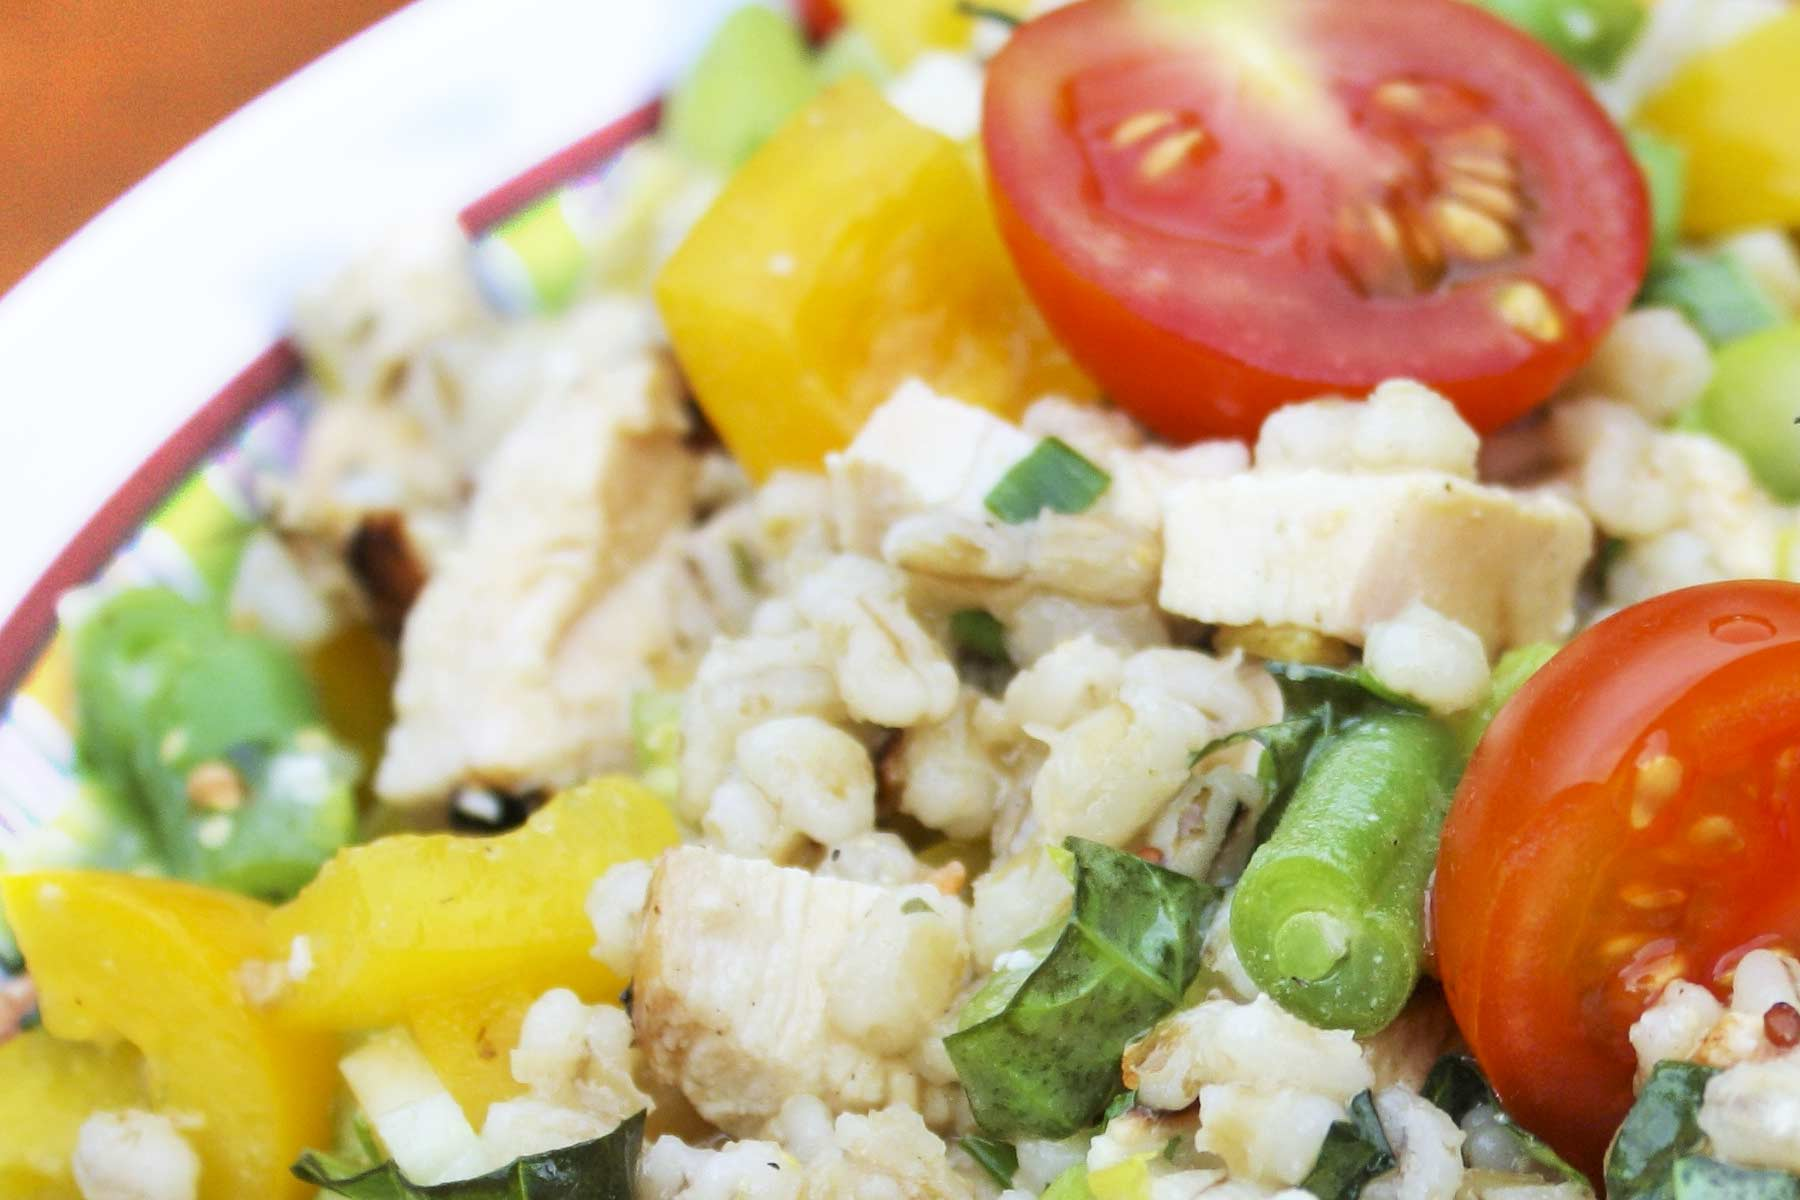 Add quinoa to your favorite salad and enjoy!